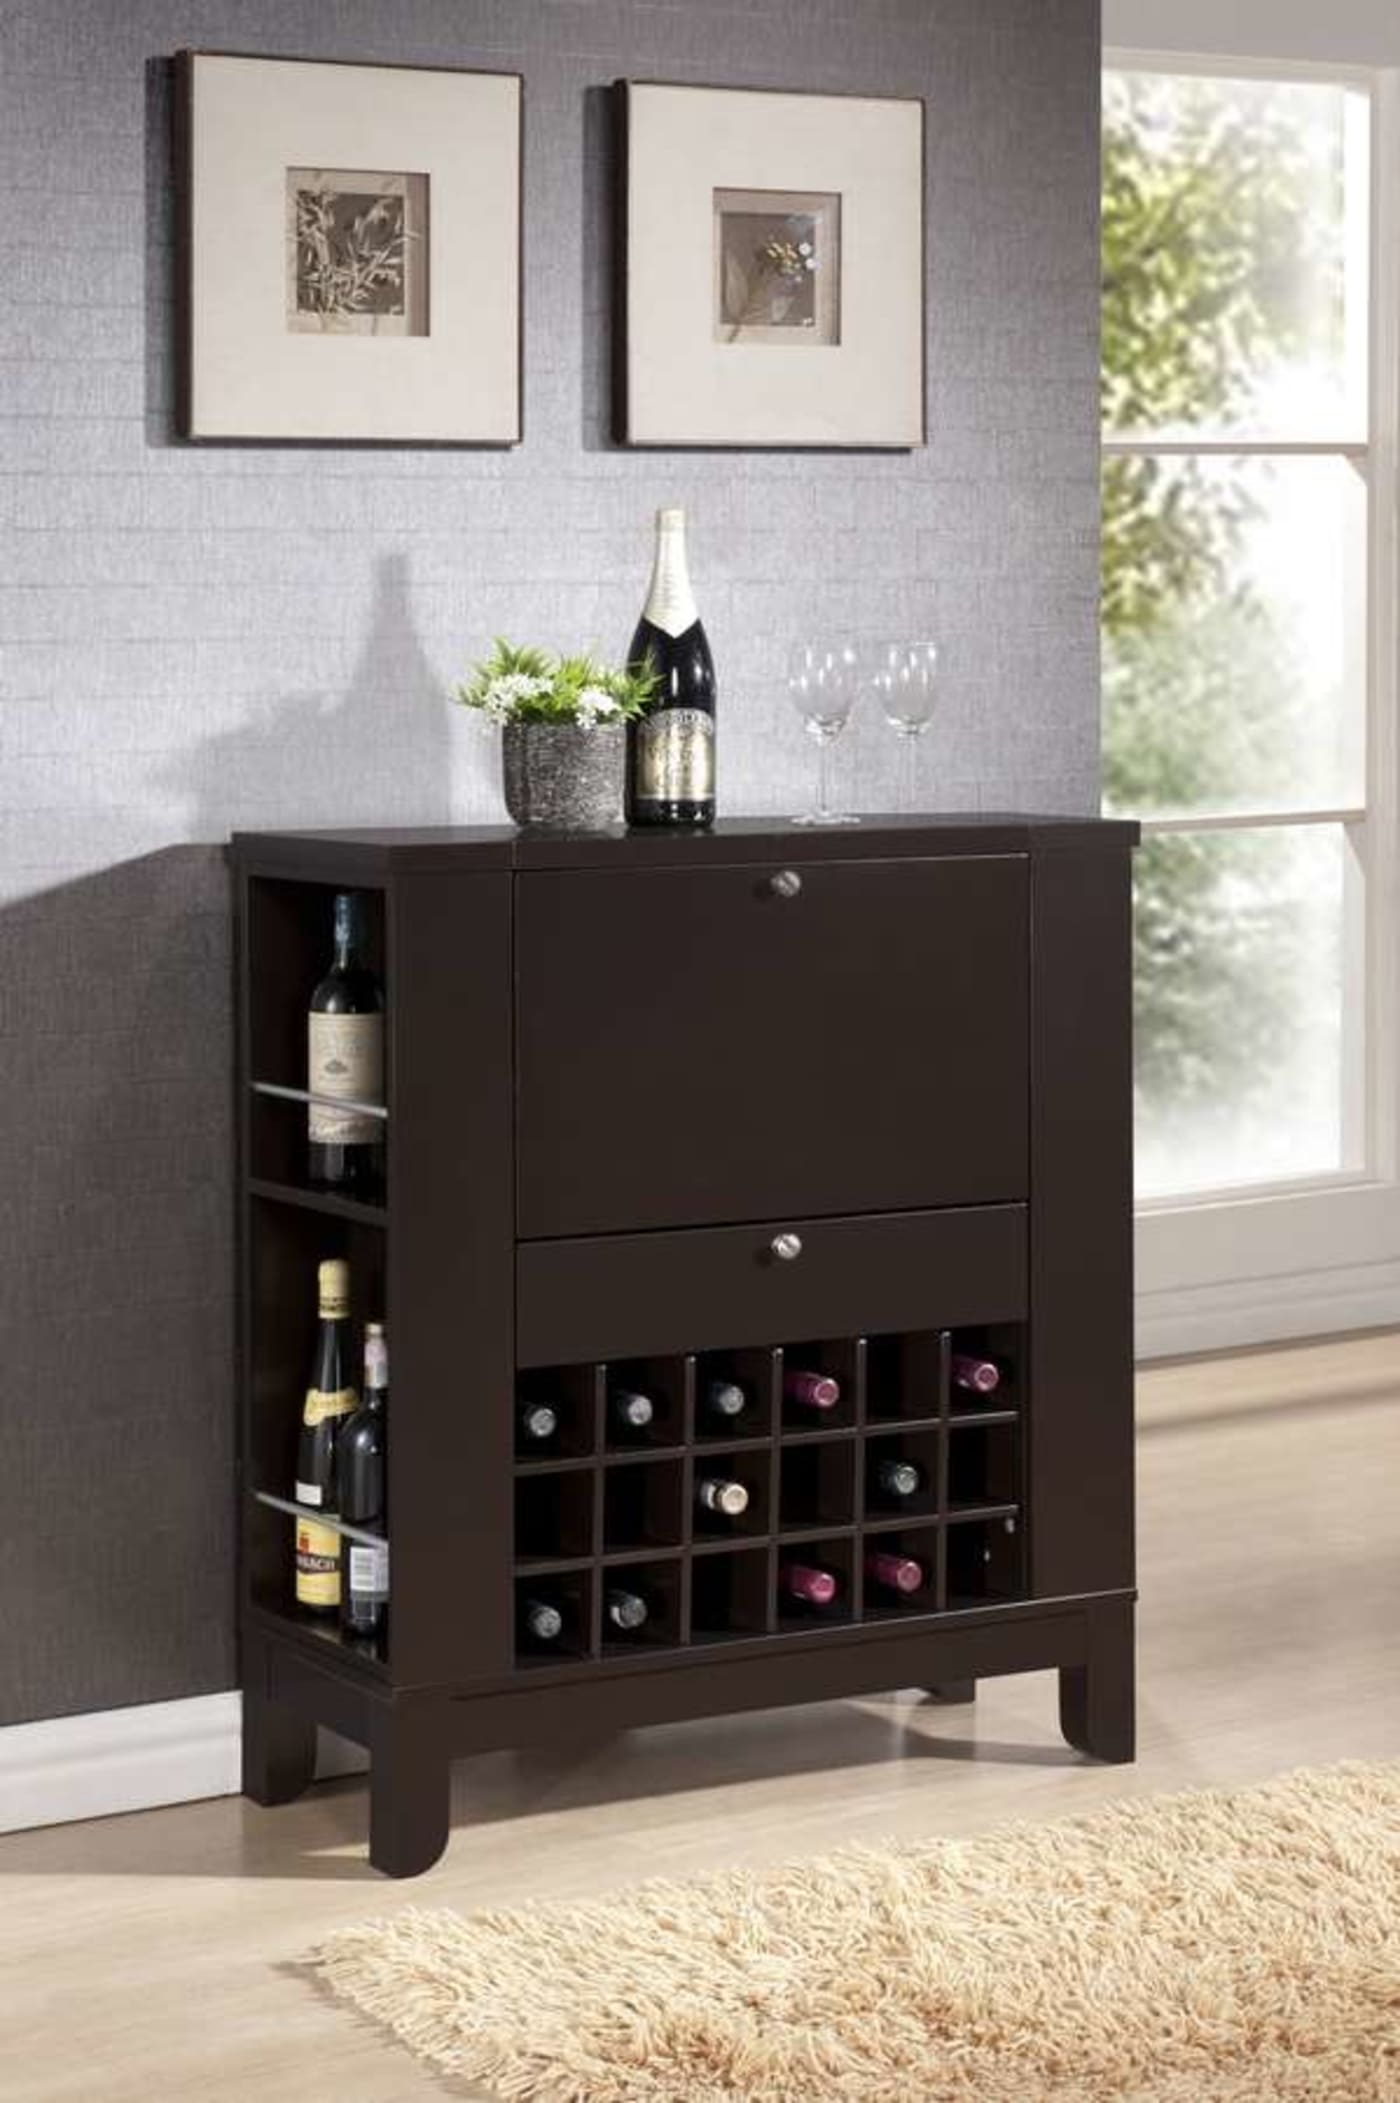 Modesto Auto Sales >> Baxton Studio Modesto Dark Brown Modern Dry Bar And Wine Cabinet & Reviews - Goedekers.com